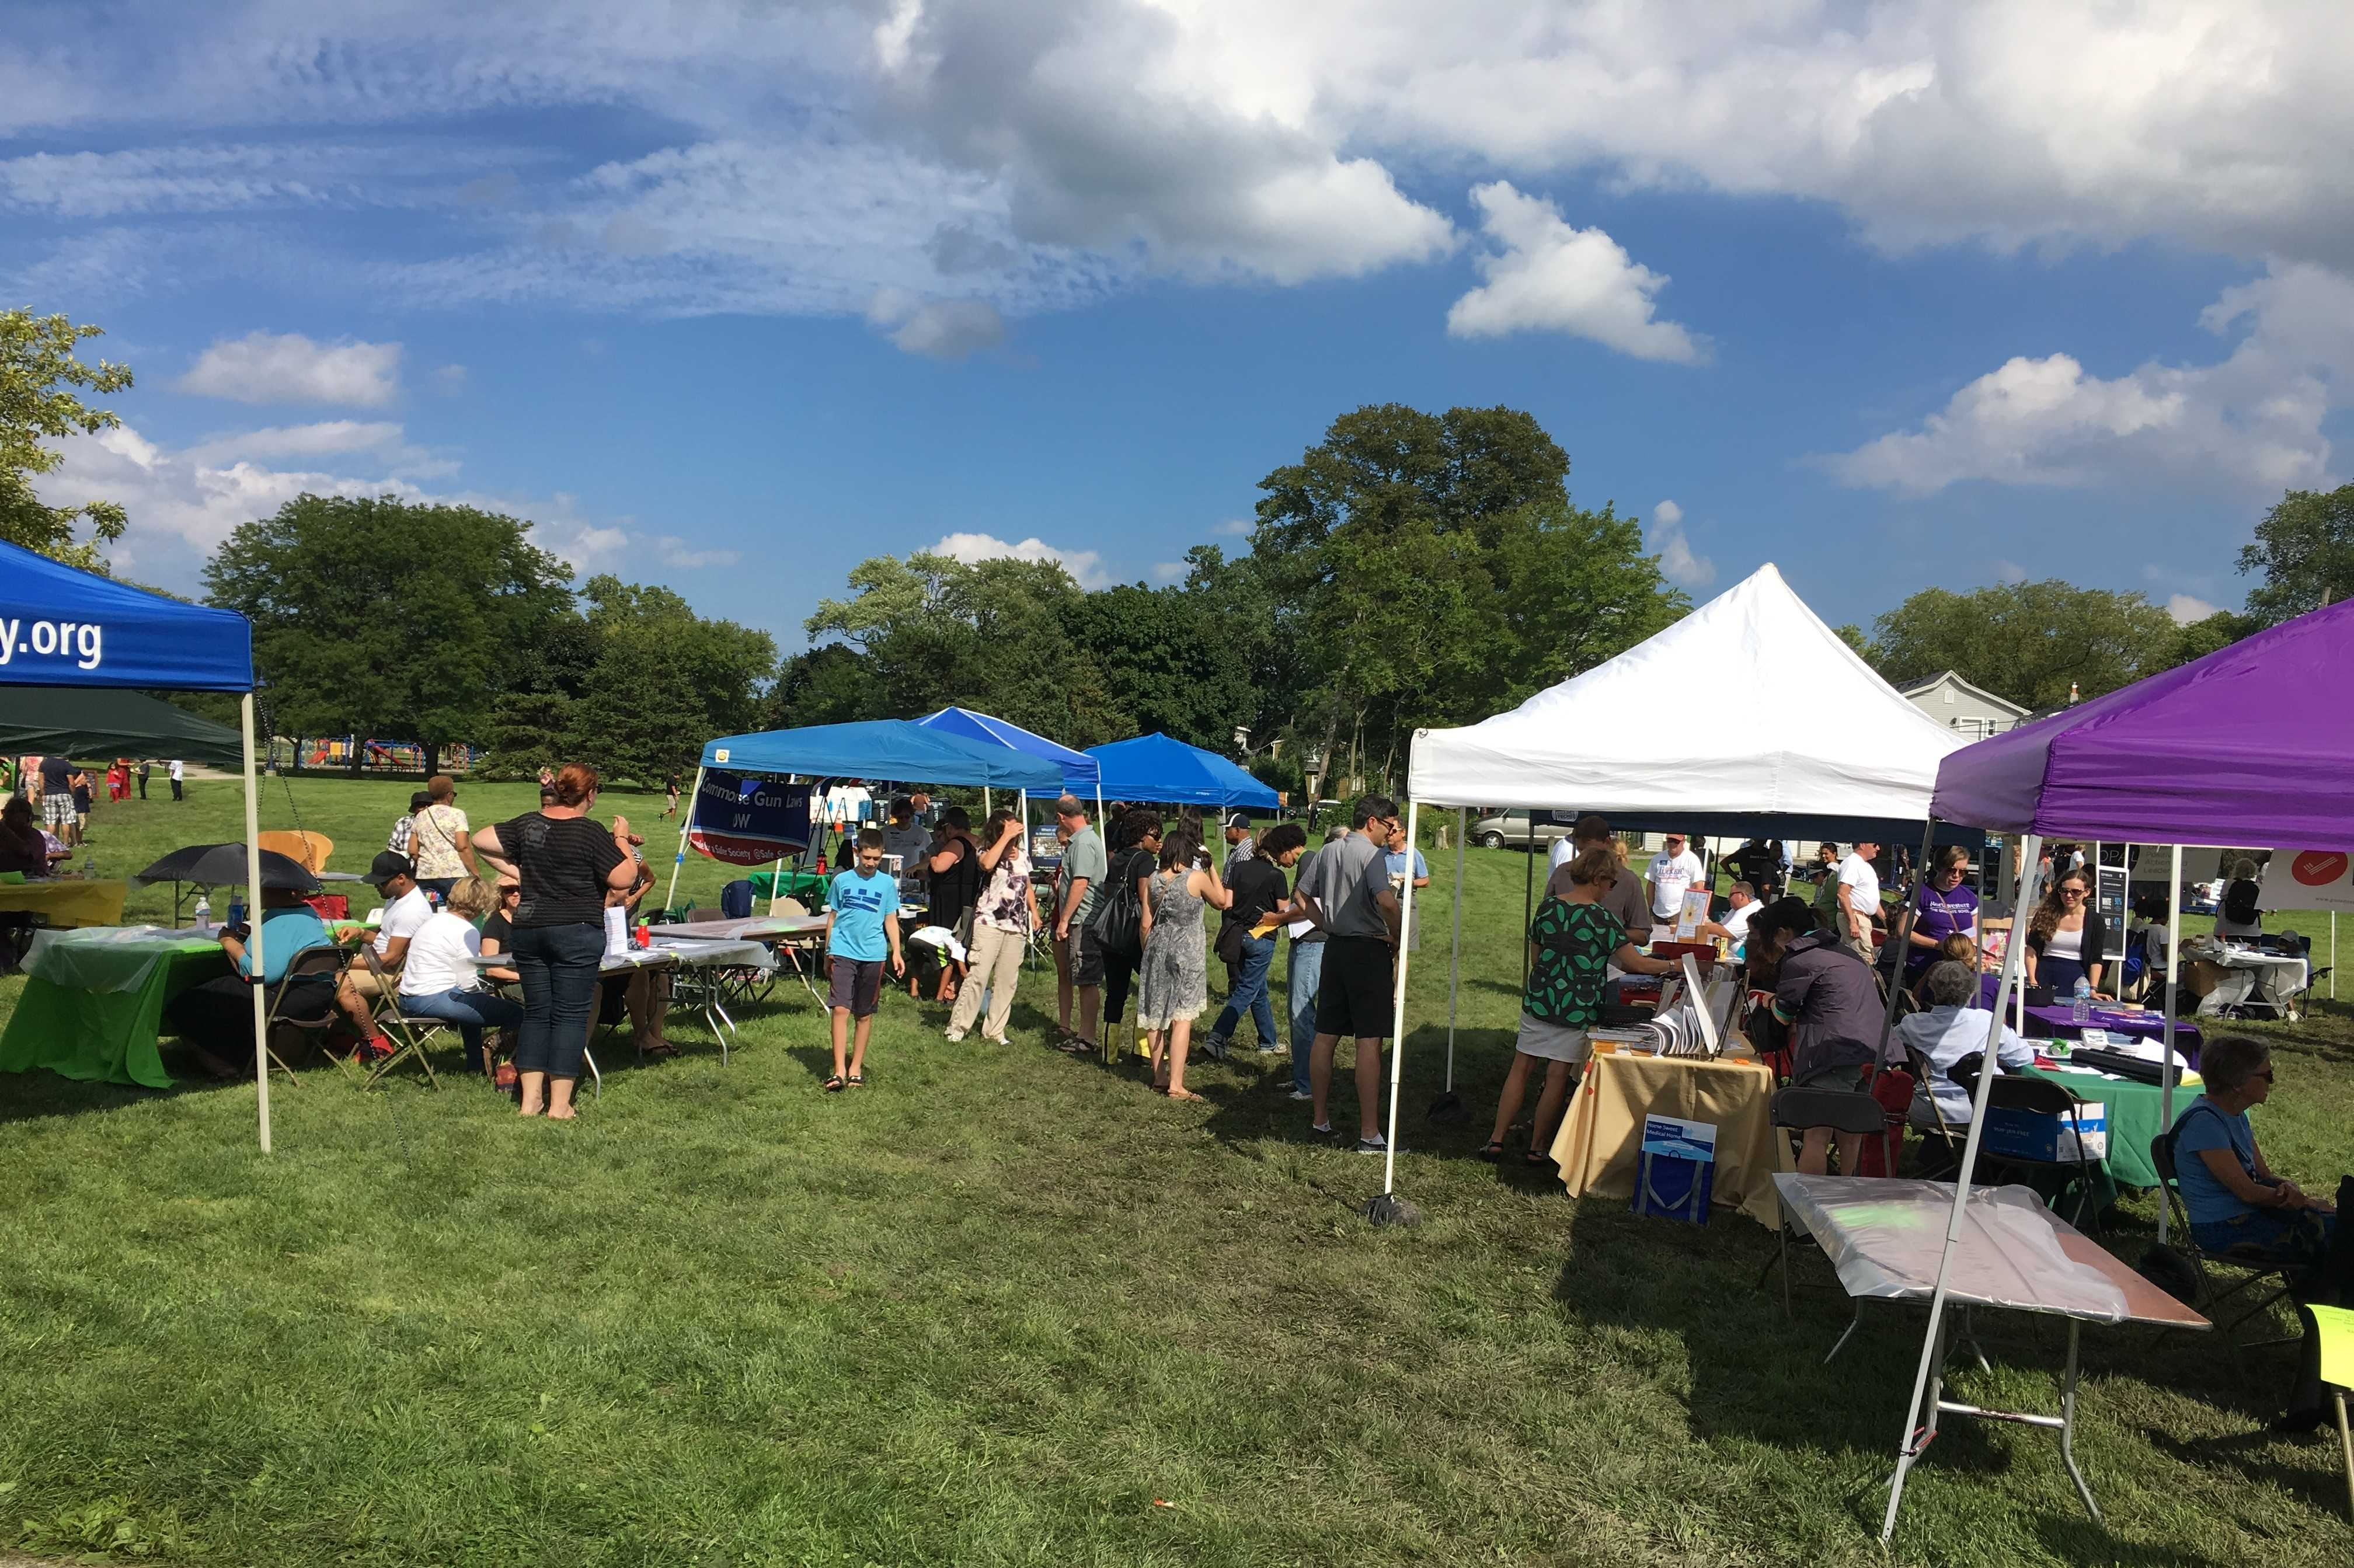 Residents and Community members gather at Twiggs Park for the Fifth Ward Festival. The festival featured information booths in addition to food vendors and entertainment acts to help promote the end of gun violence.